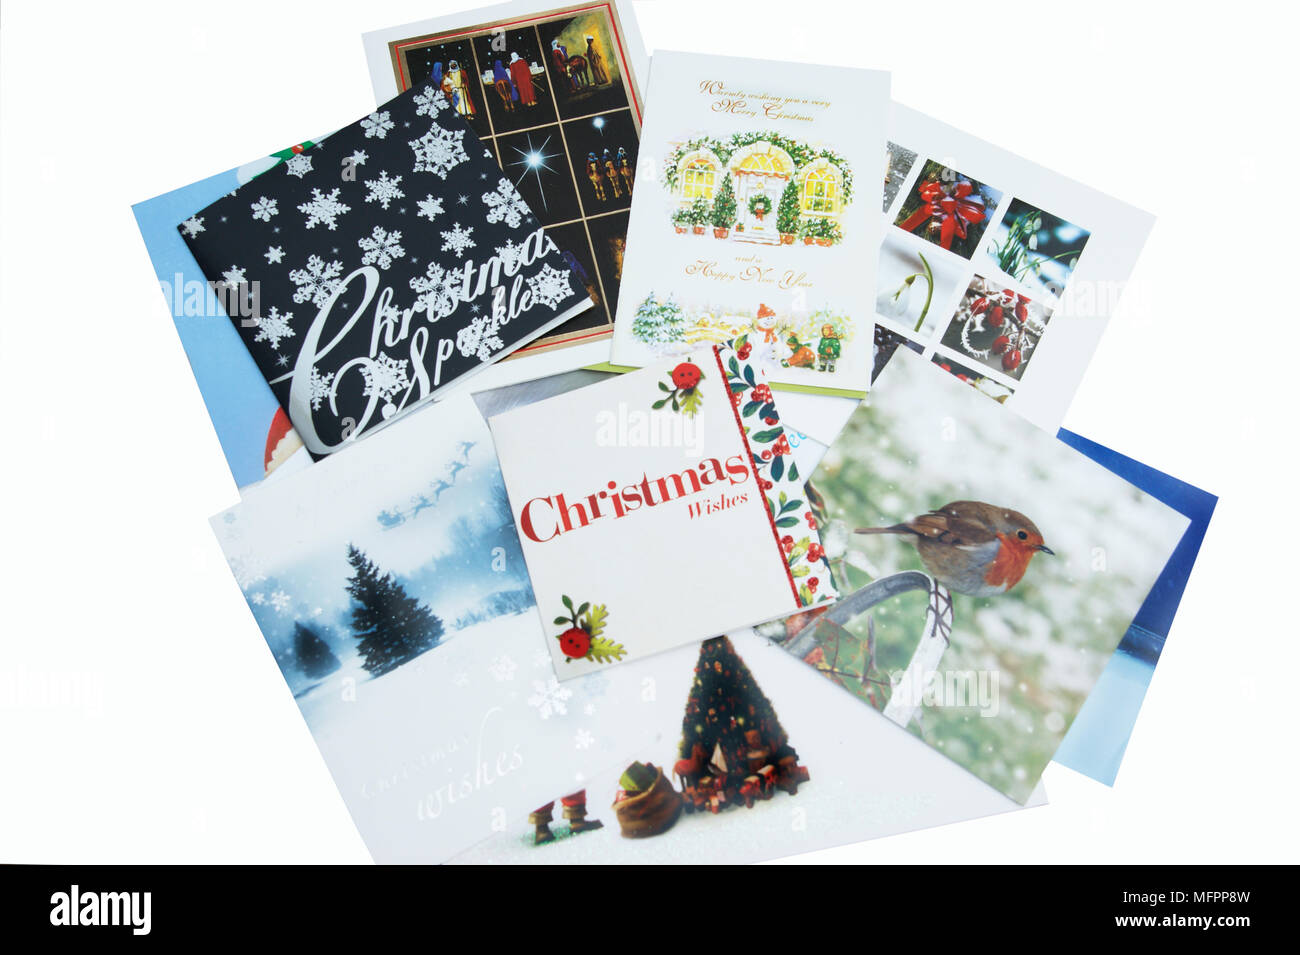 A Display Of Christmas Cards Stock Photos & A Display Of Christmas ...